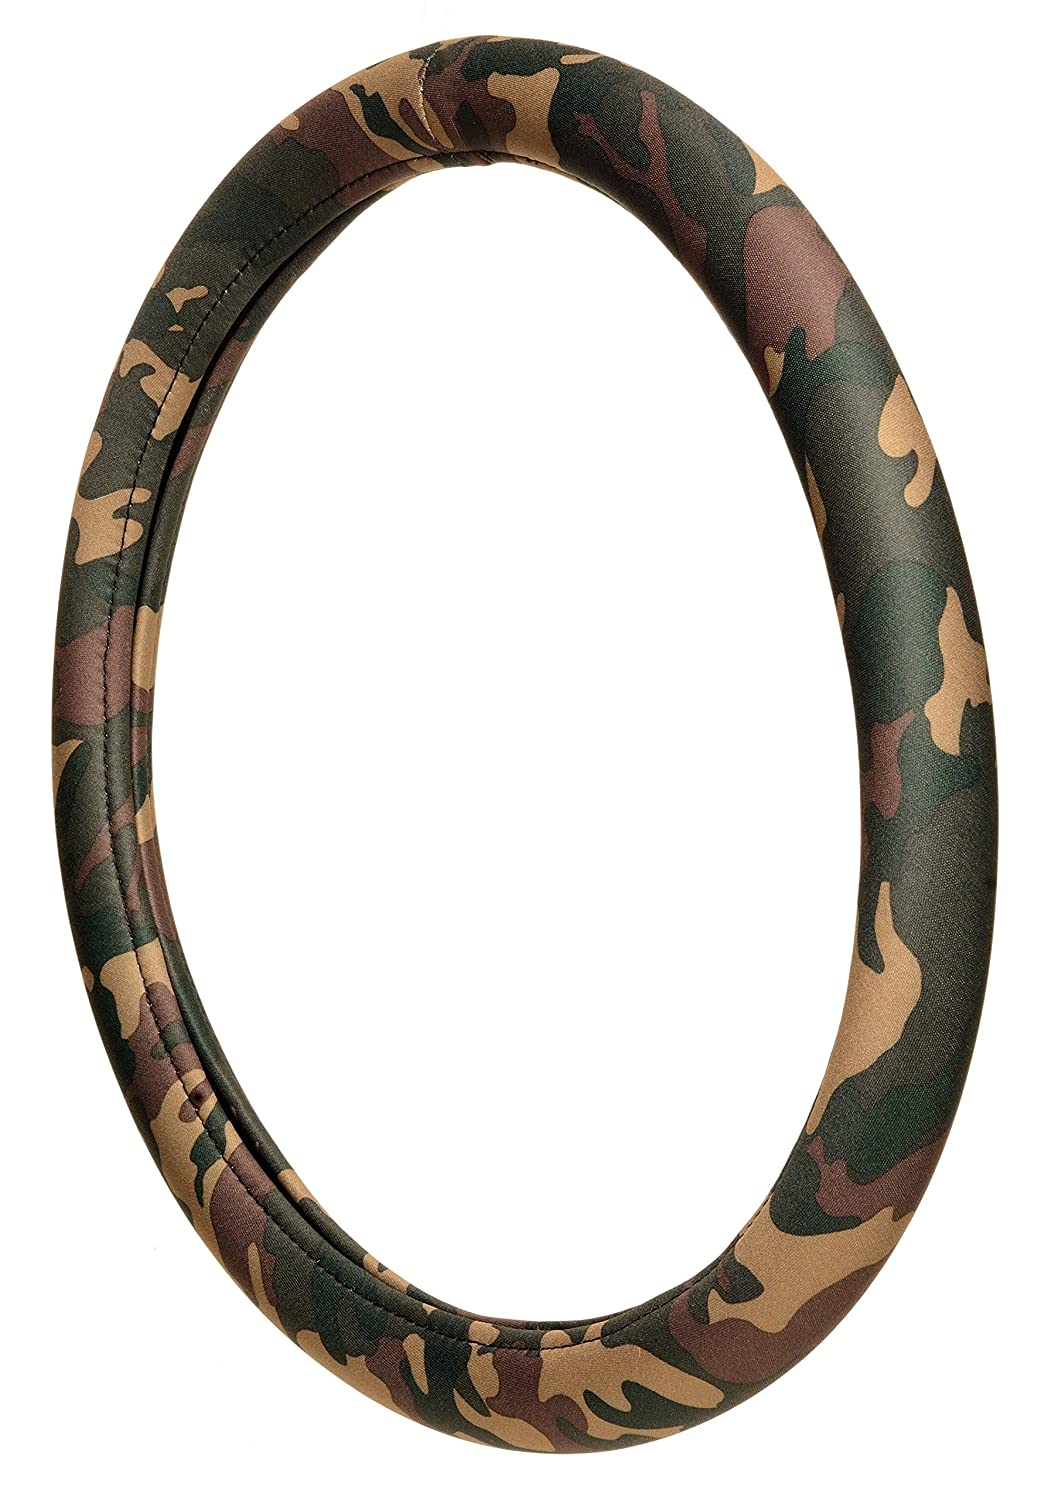 ALLISON 95-0382 Green Camo Steering Wheel Cover